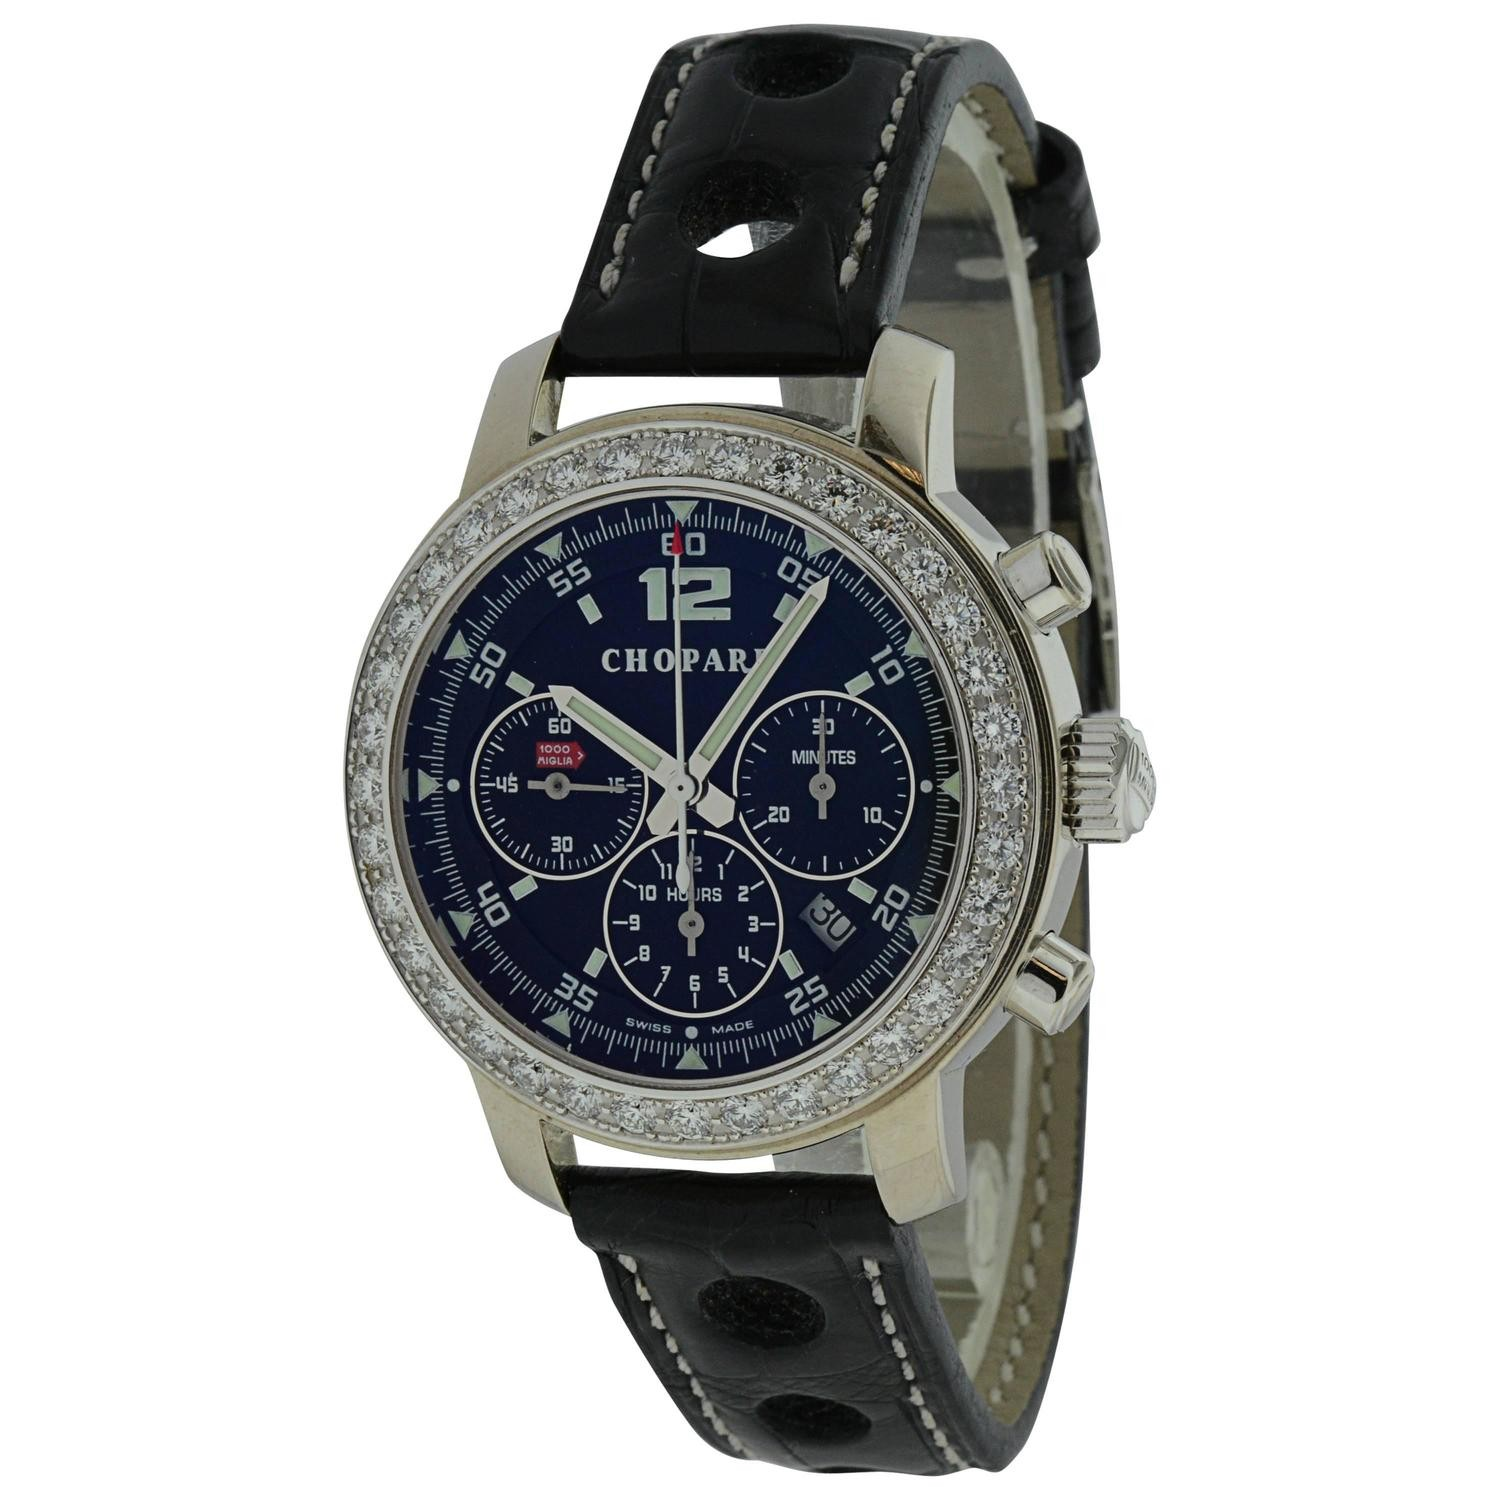 Chopard Mille Miglia Chronograph in White Gold with Diamond Bezel